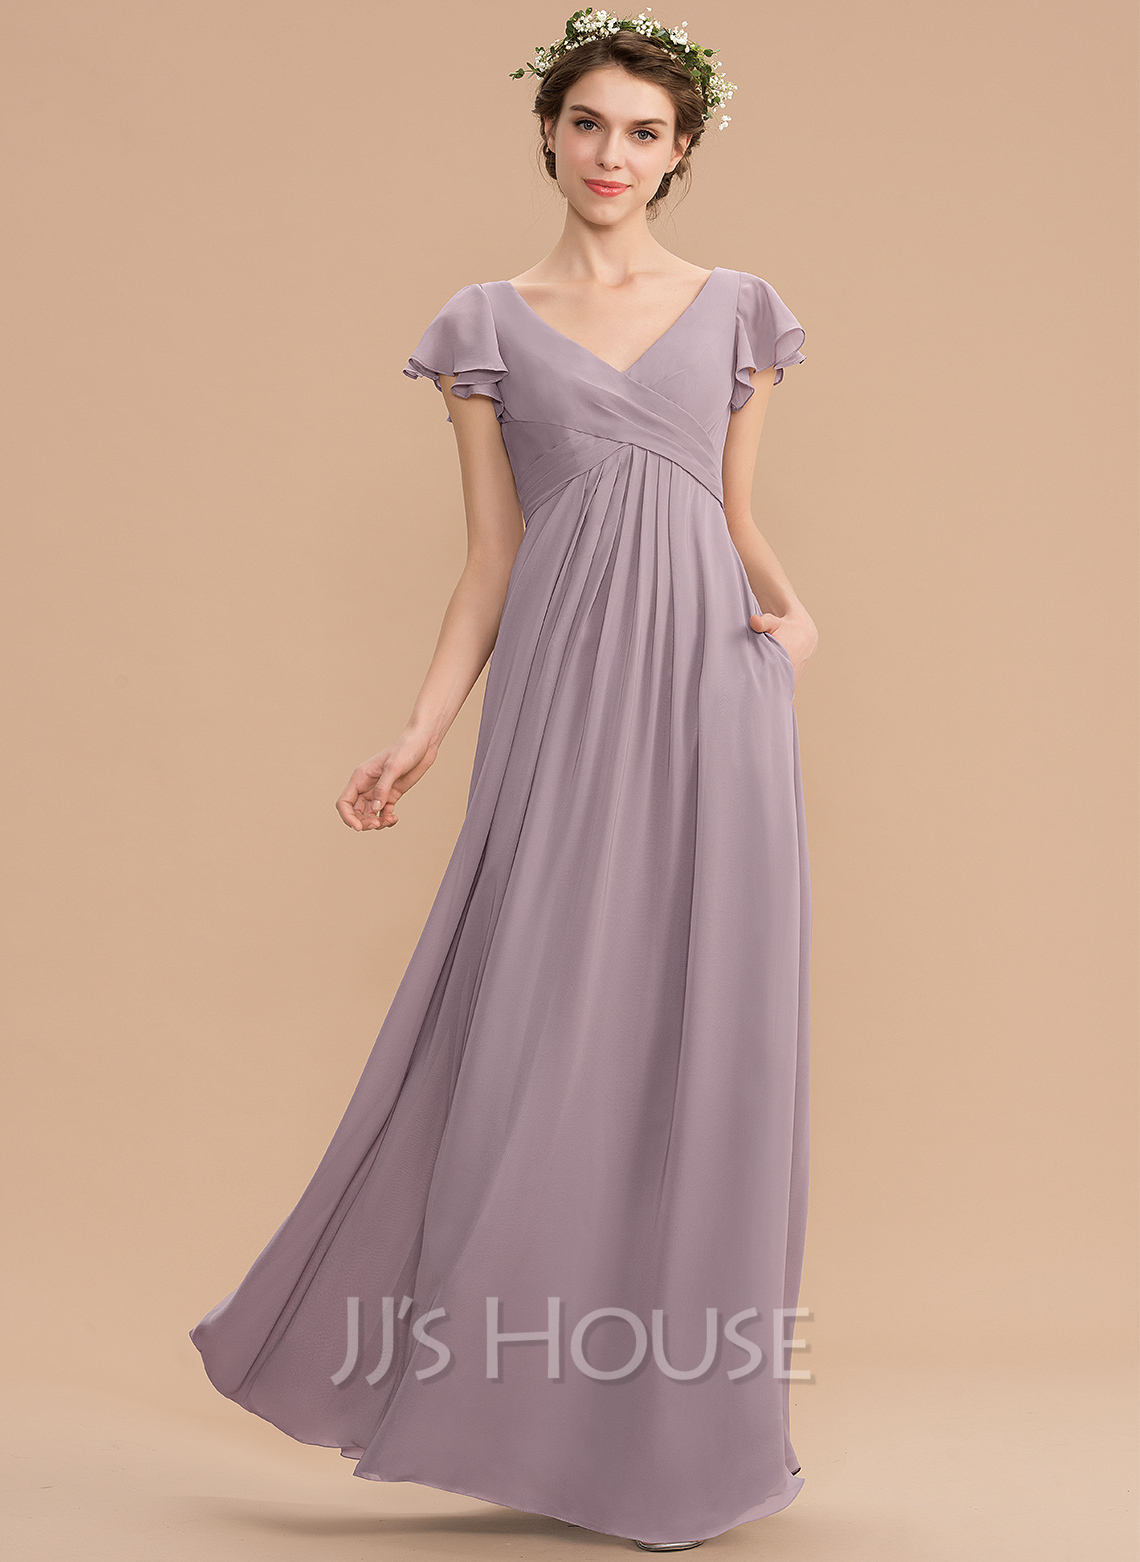 e68b3aafc4f4 A-Line V-neck Floor-Length Chiffon Bridesmaid Dress With Cascading Ruffles  Pockets. Loading zoom